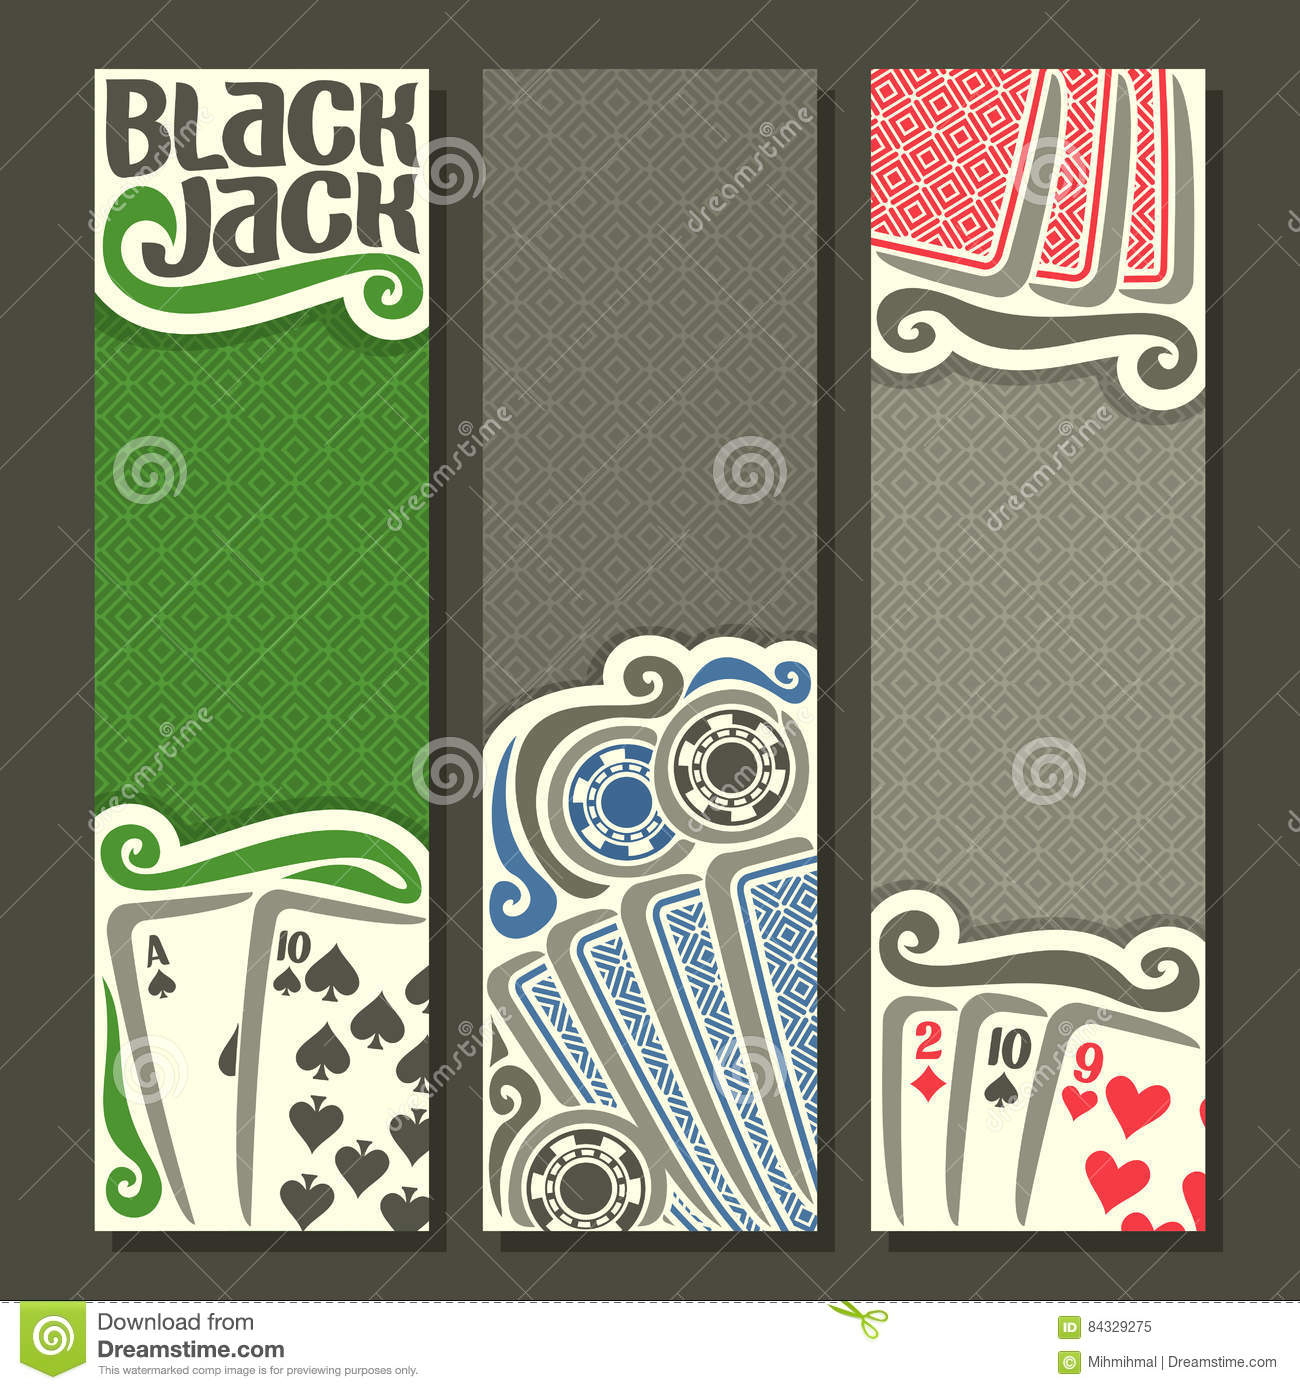 Vector vertical banners Black Jack for text